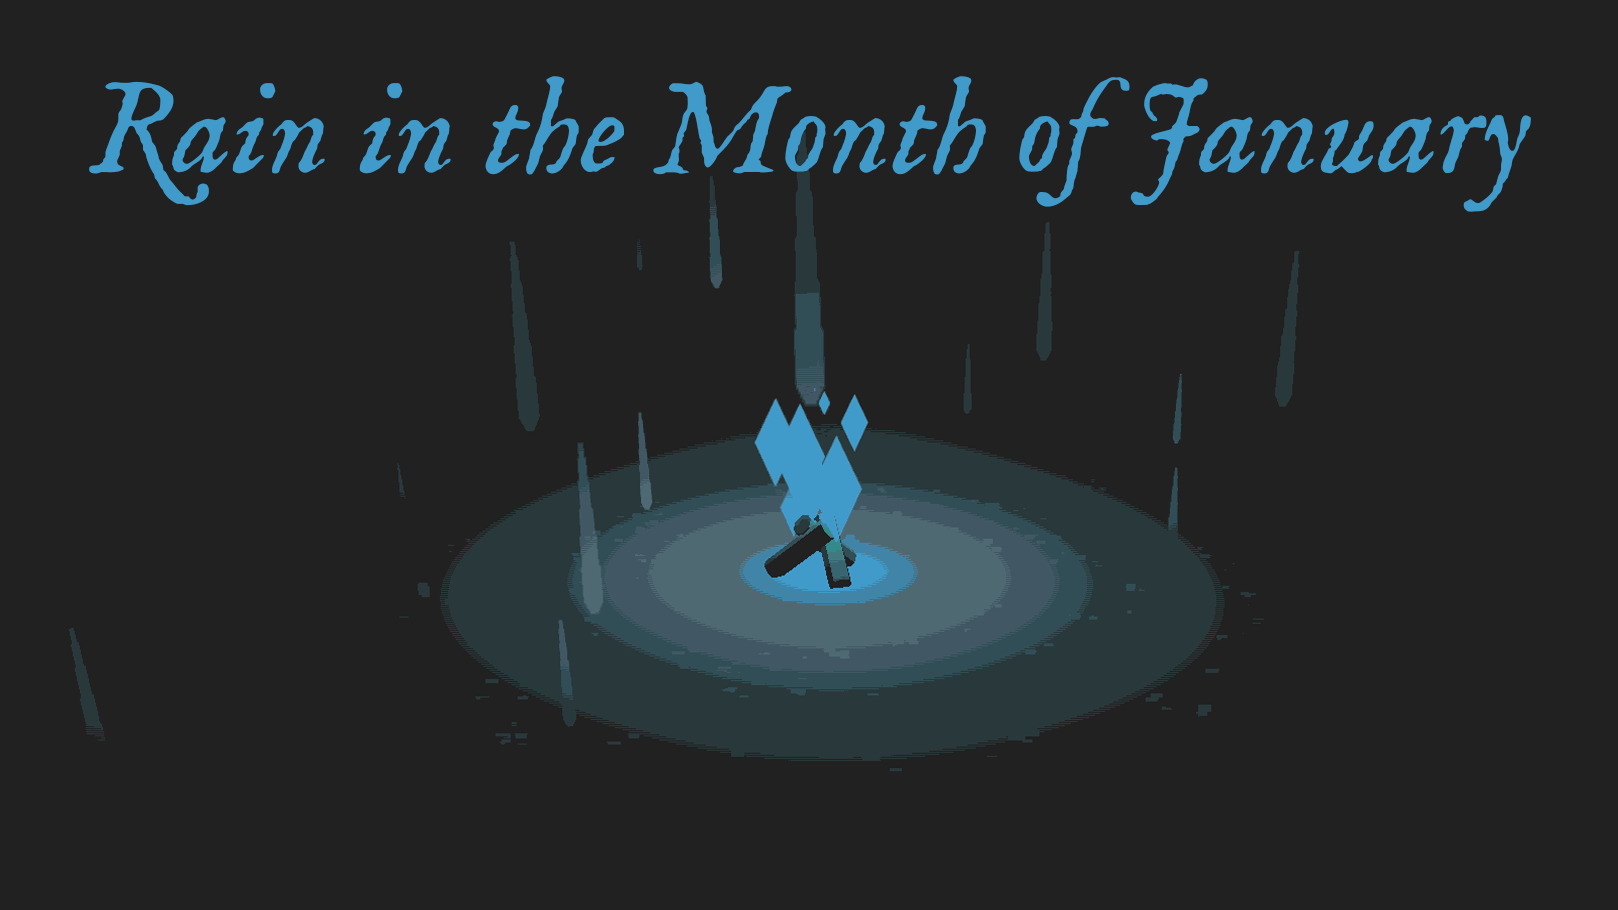 Rain in the Month of January